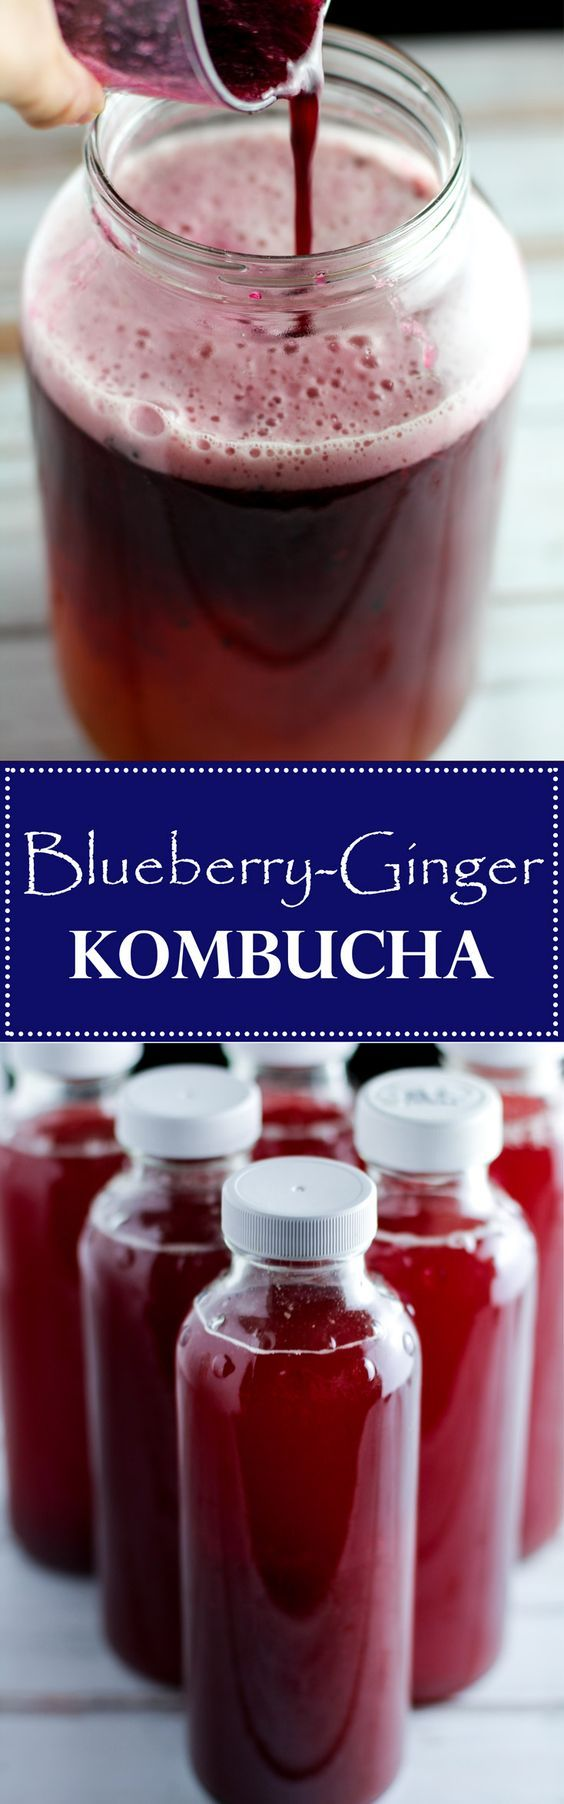 This flavored Blueberry Ginger Kombucha recipe is a tasty way to flavor your own homemade kombucha, a health drink full of nutrients and probiotics! via @fithappyfree